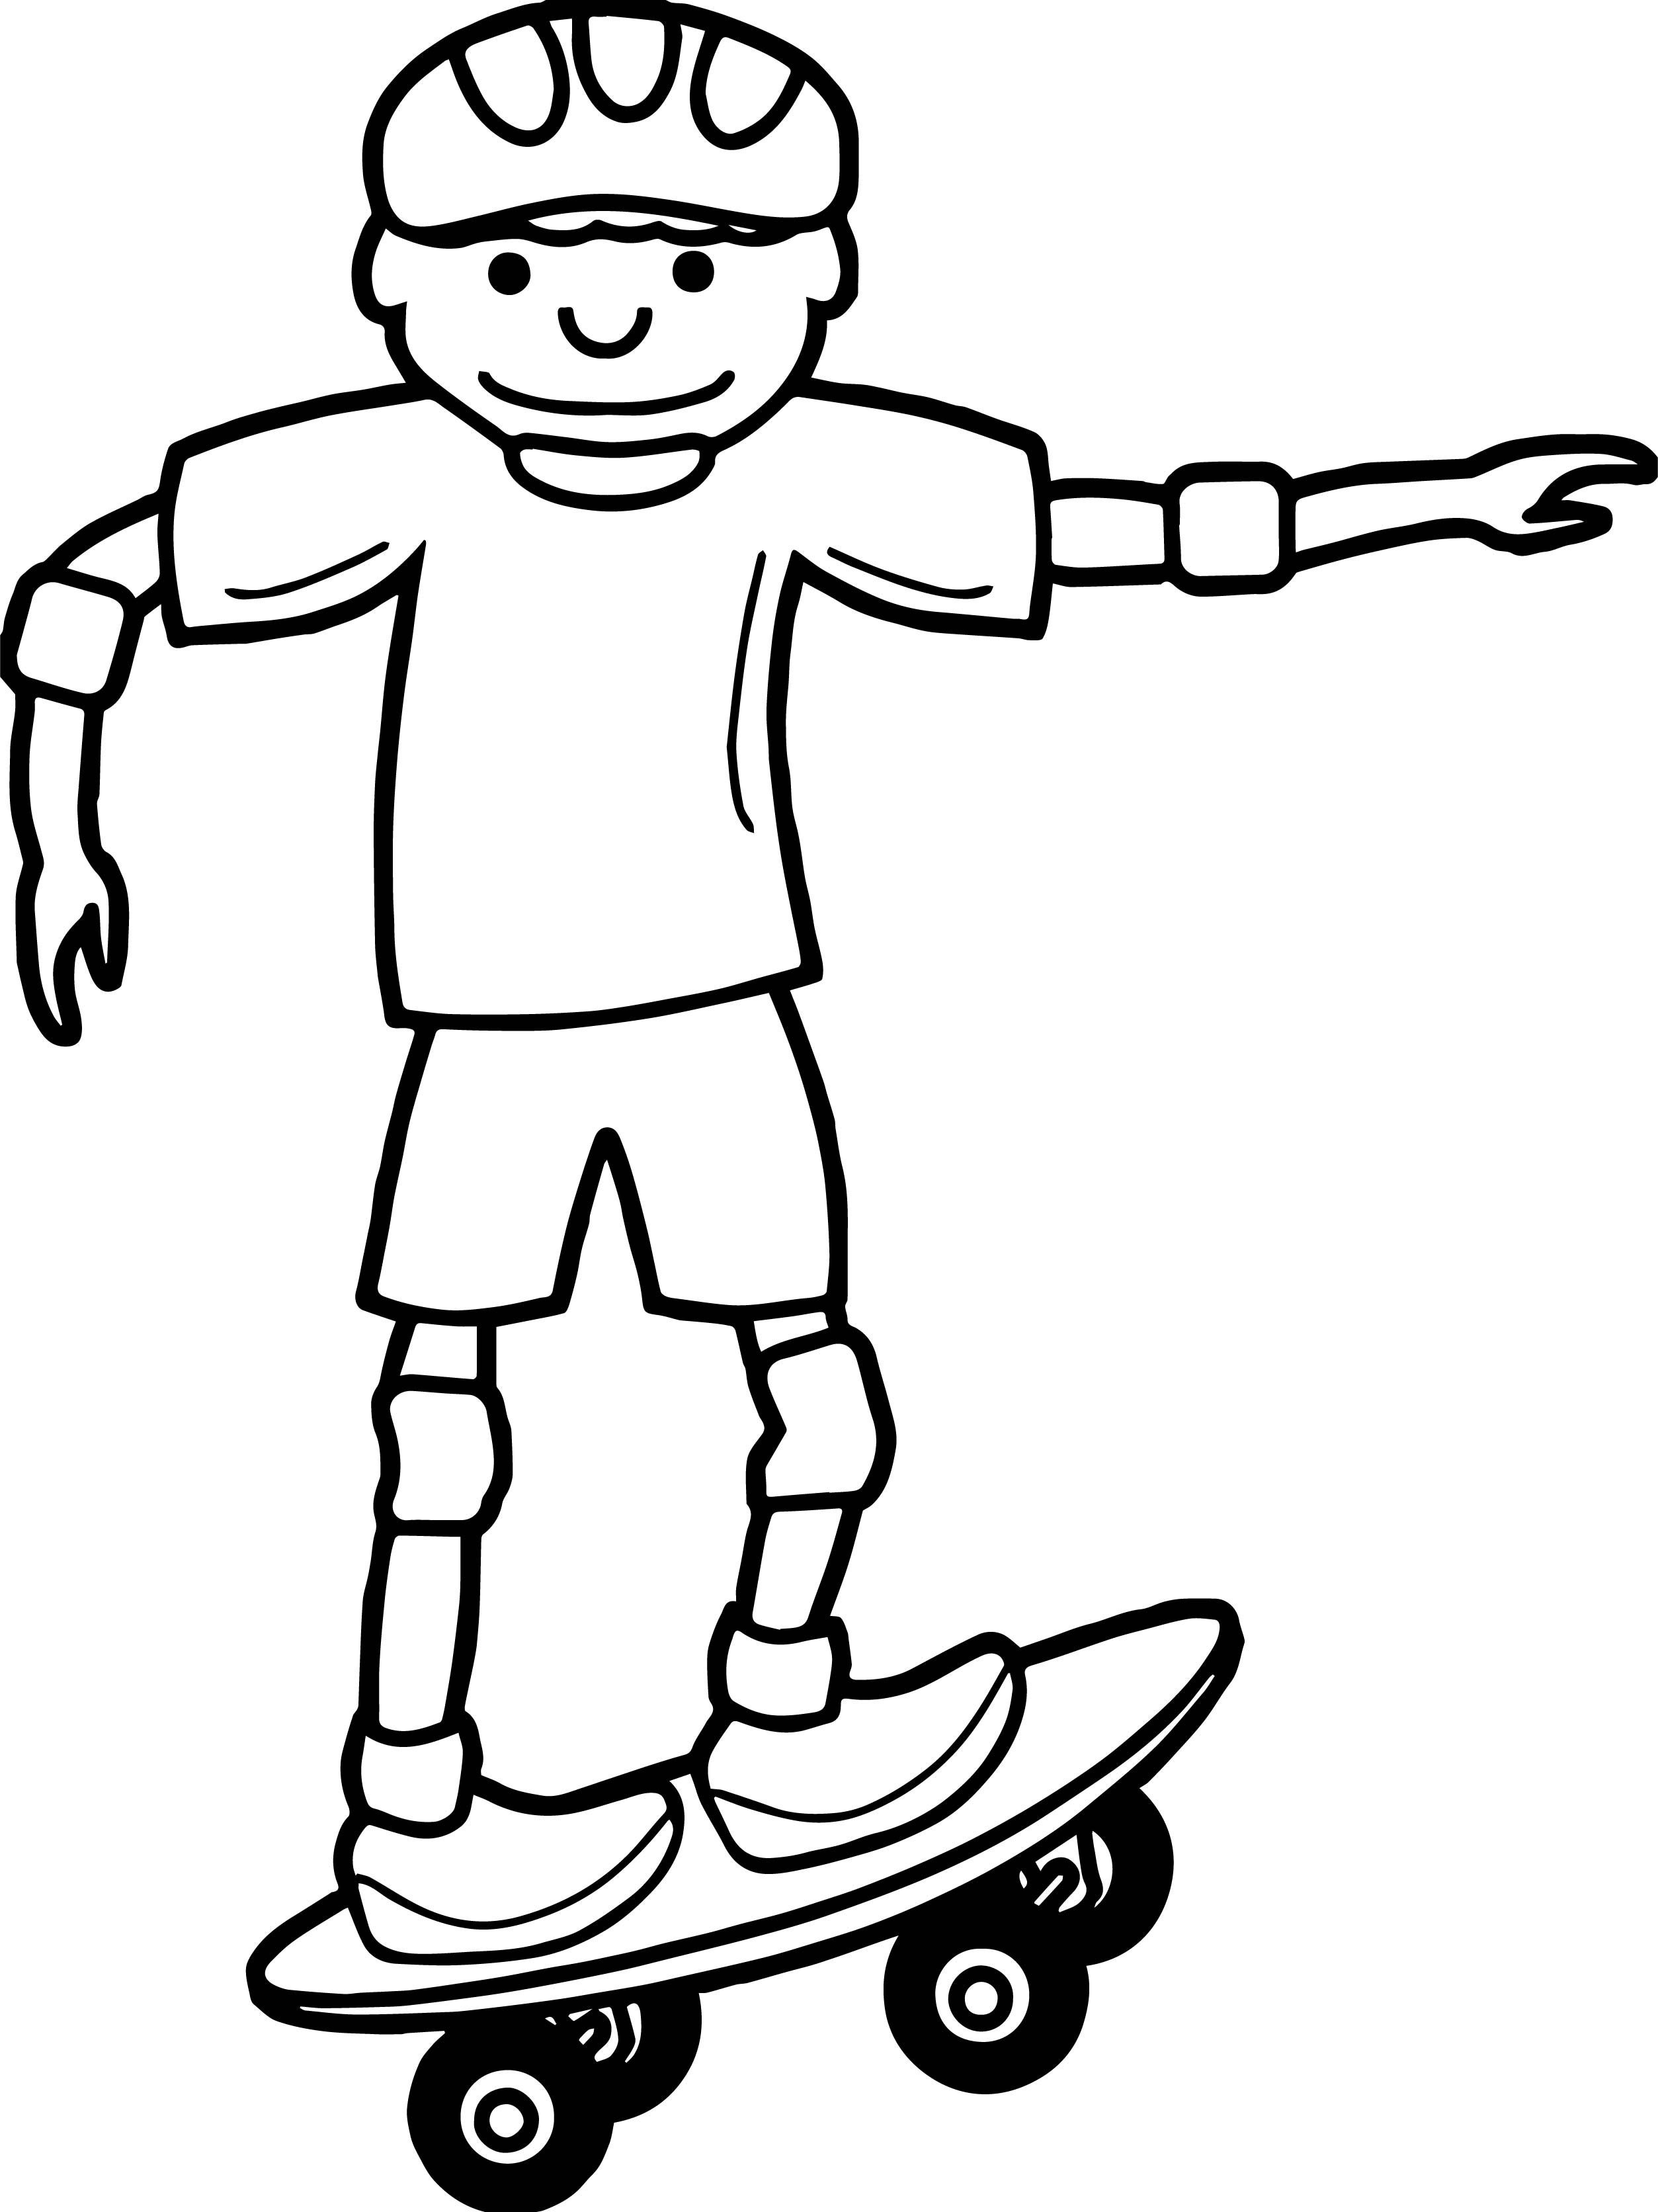 Boy Skater Coloring Page